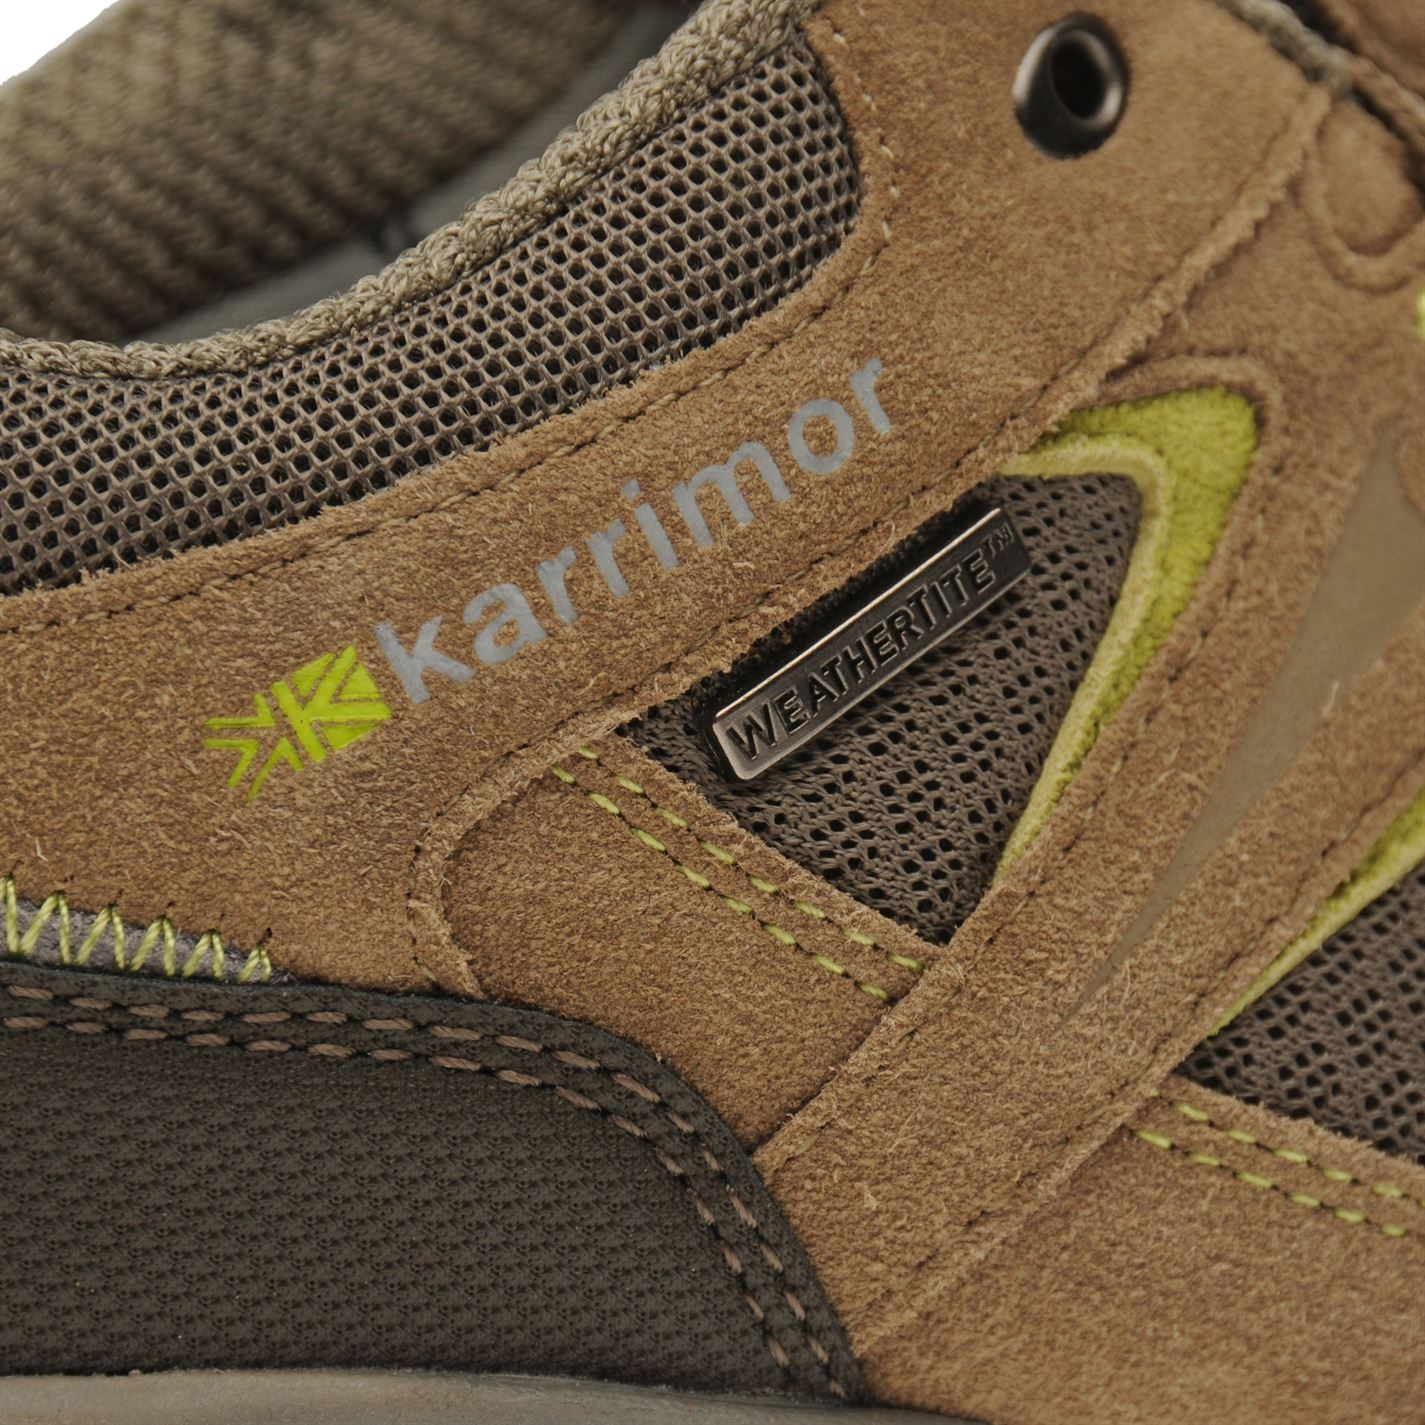 Karrimor-Womens-Mount-Low-Ladies-Walking-Shoes-Waterproof-Laced-Hiking-Trainers thumbnail 21